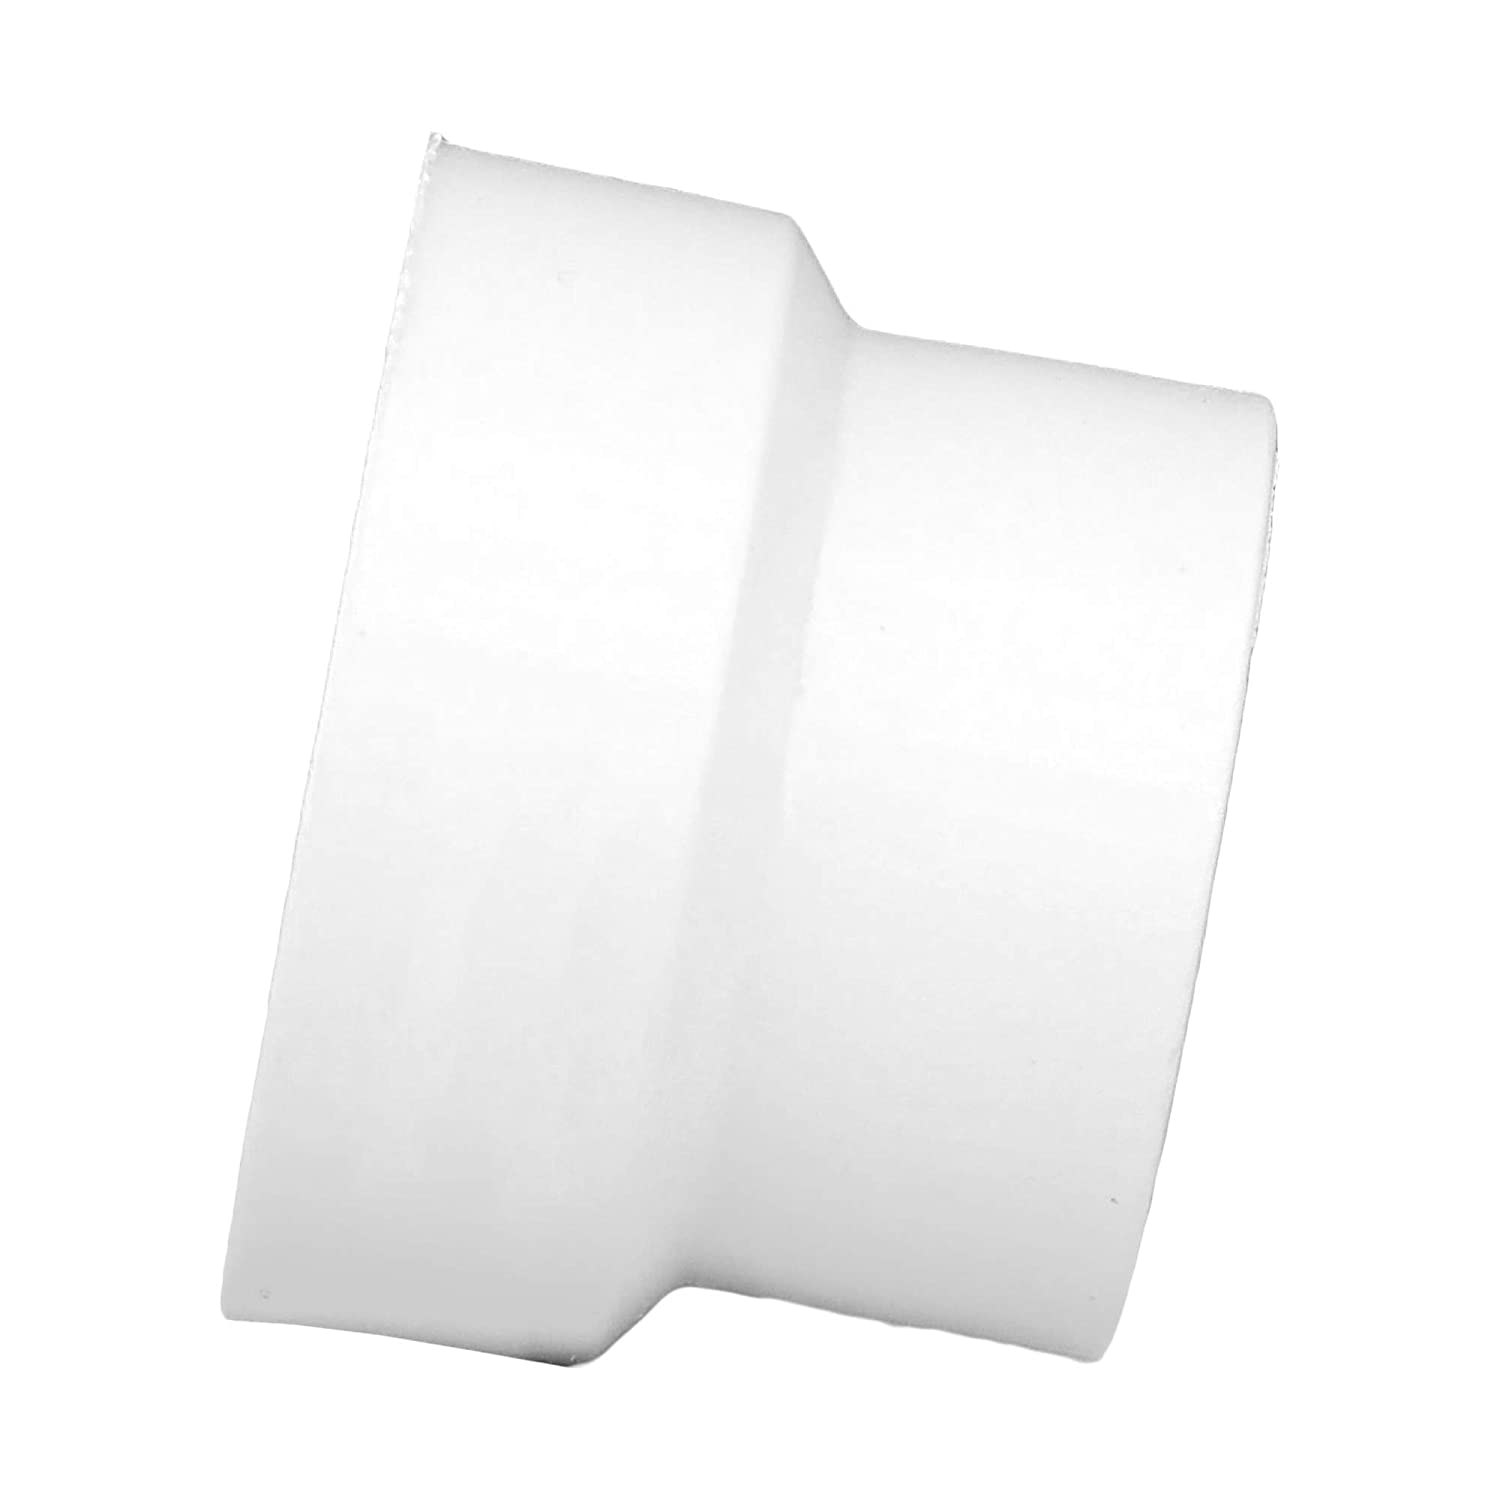 Schedule 40 PVC DWV and High Tensile for Home or Industrial Use Drain, Waste and Vent Durable Hub x Spigot Single Unit Easy to Install Charlotte Pipe 2 X 1-1//2 Flush Bushing Pipe Fitting -